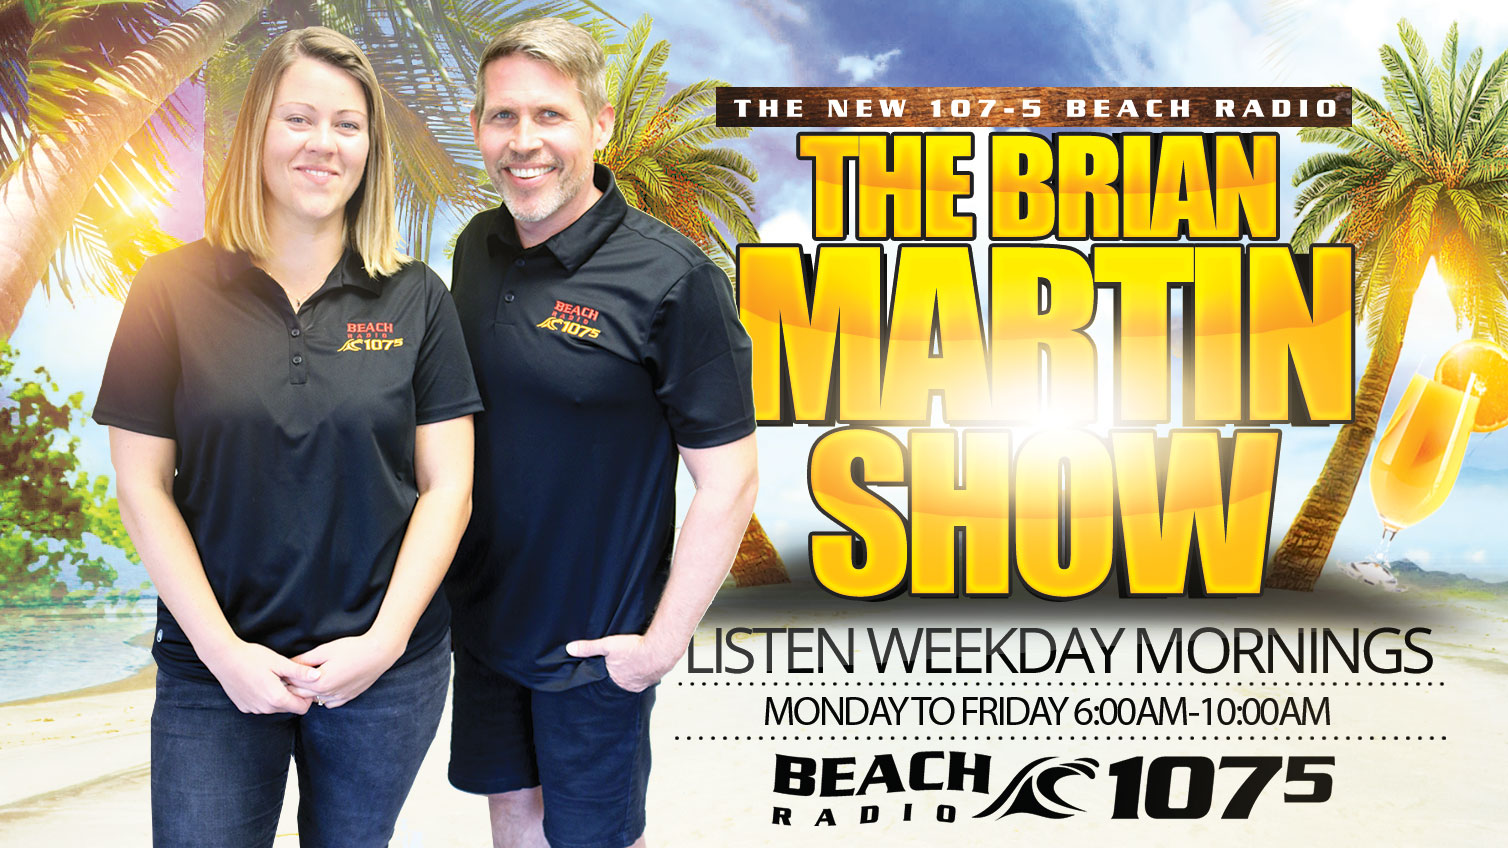 Feature: https://www.beachradiovernon.ca/beach-mornings/